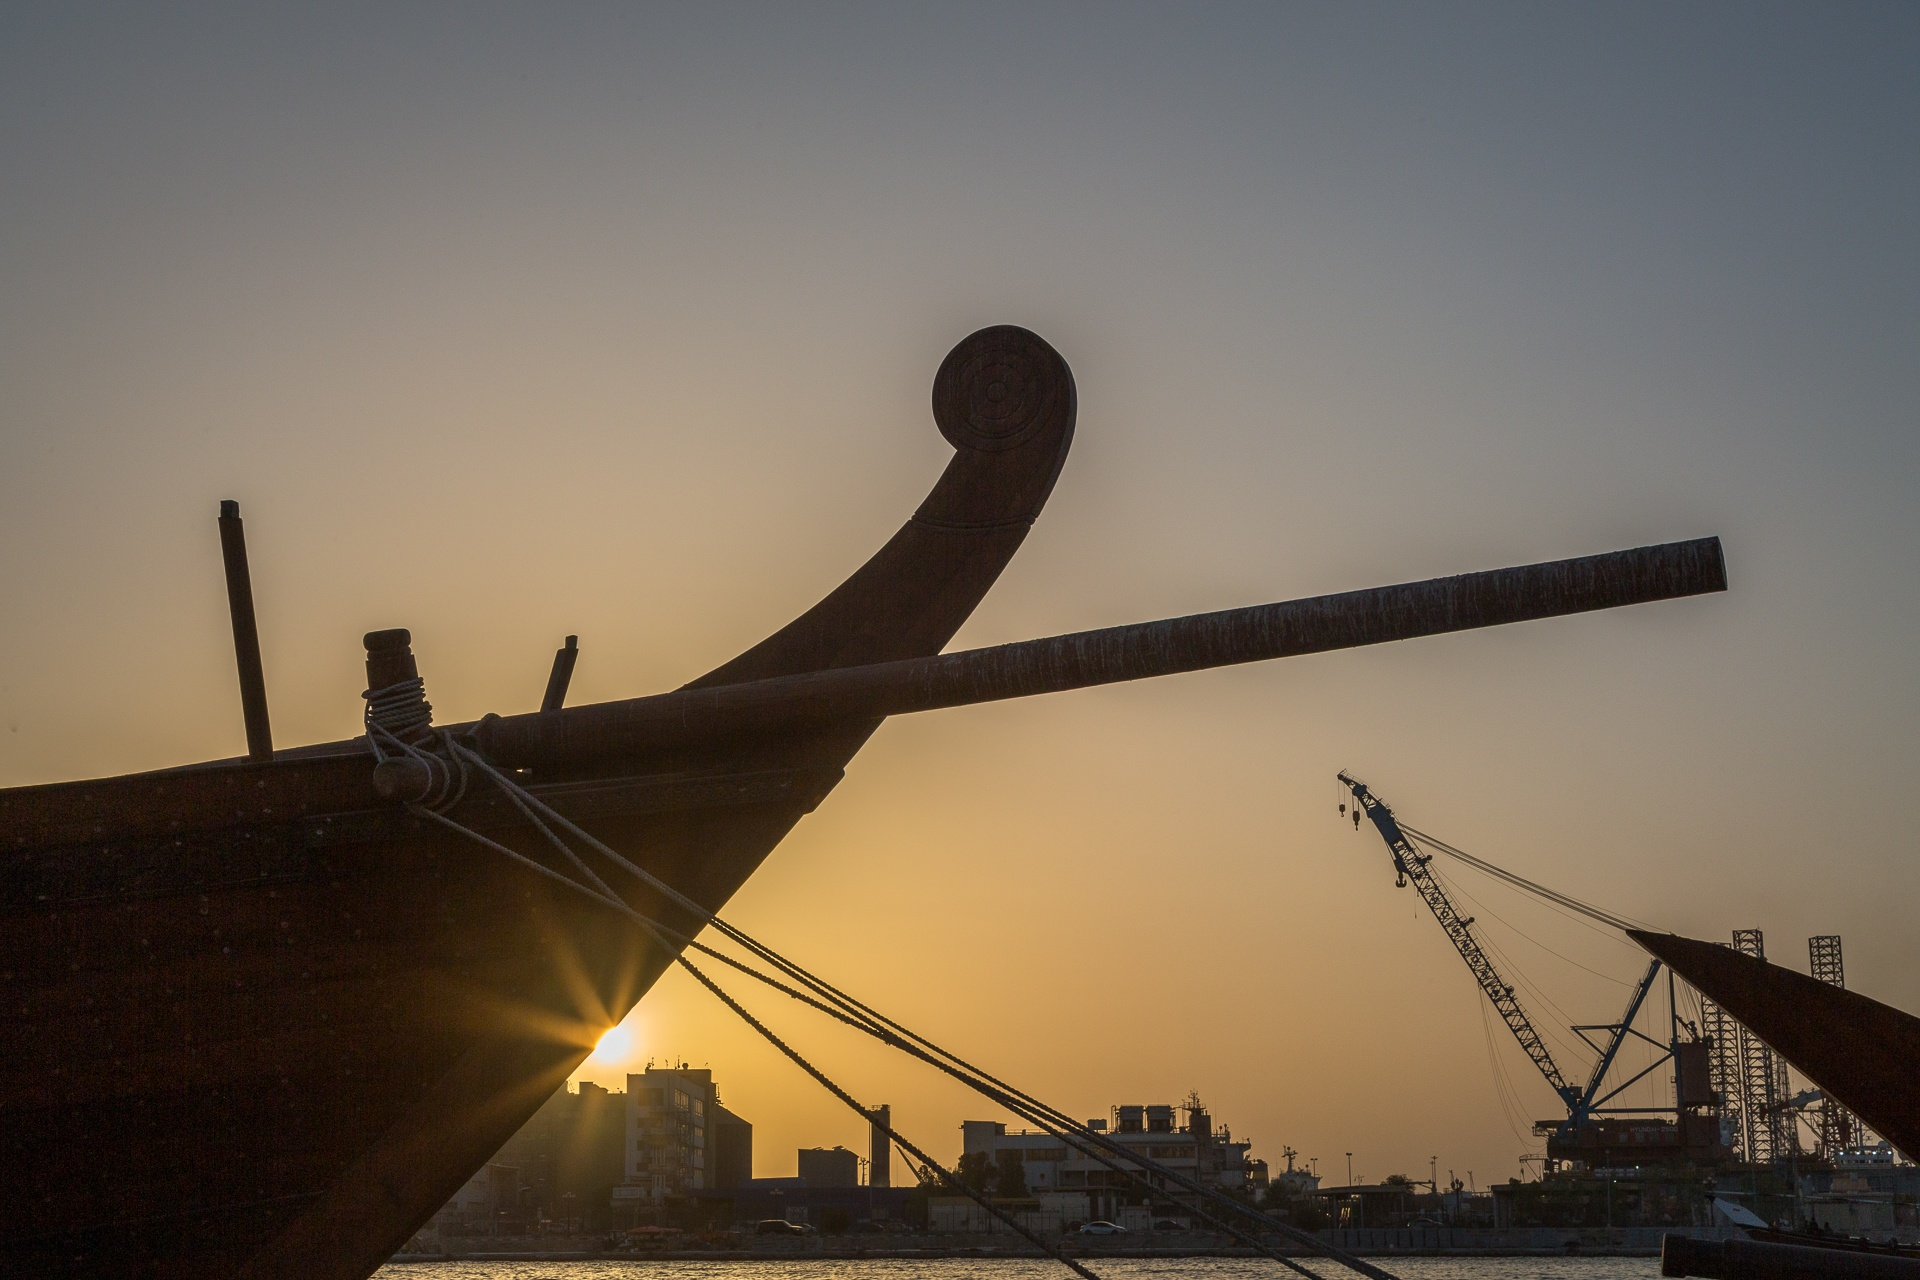 Sun setting behind dhow